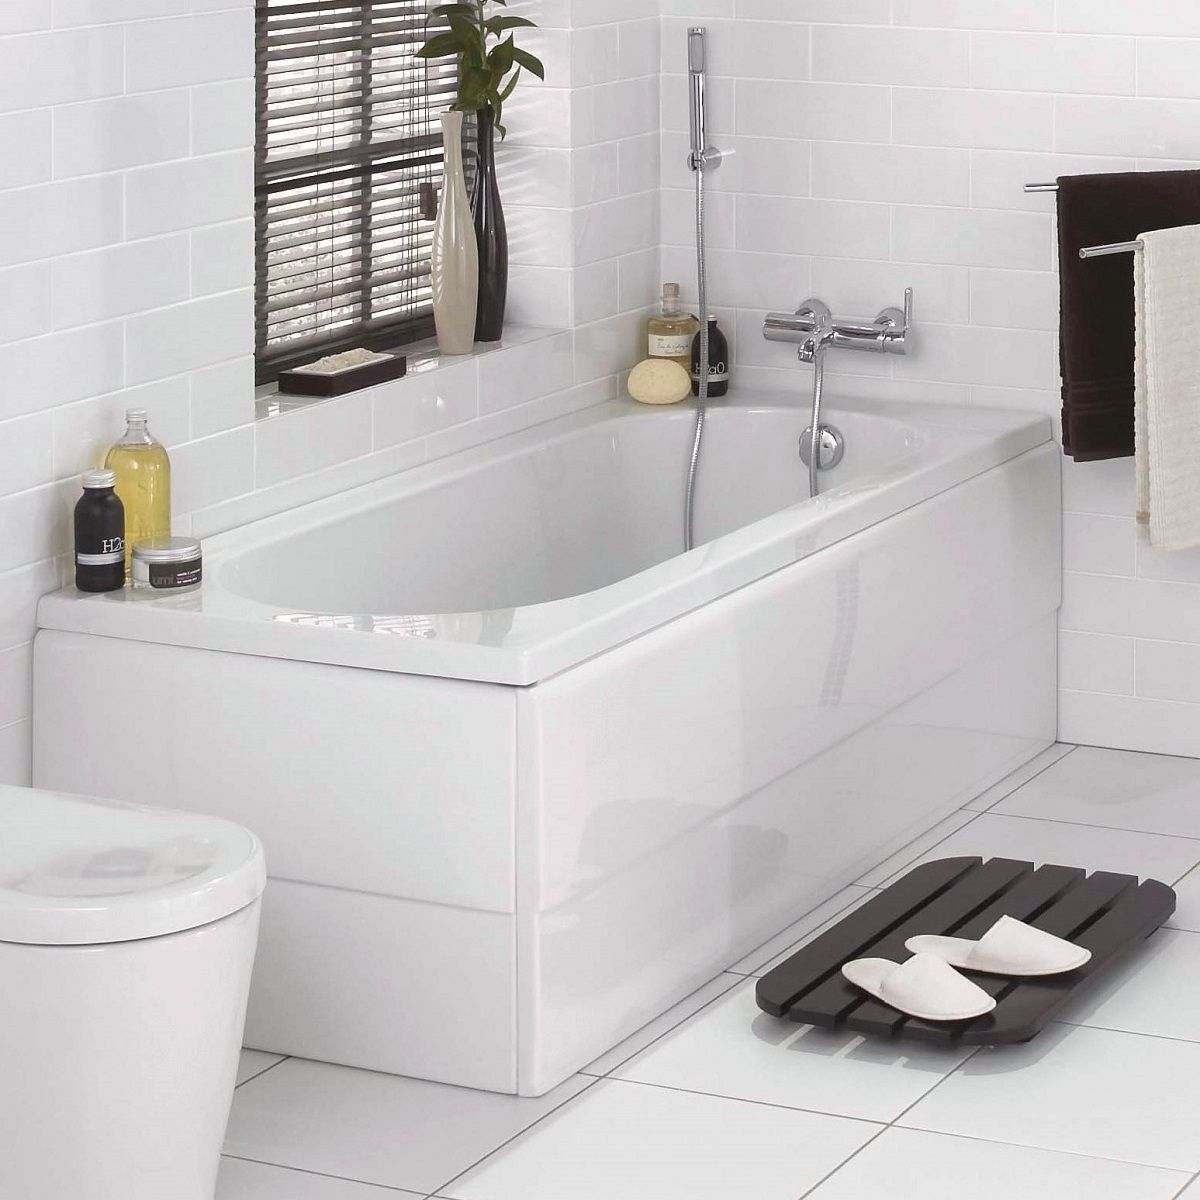 image example of a single ended bath